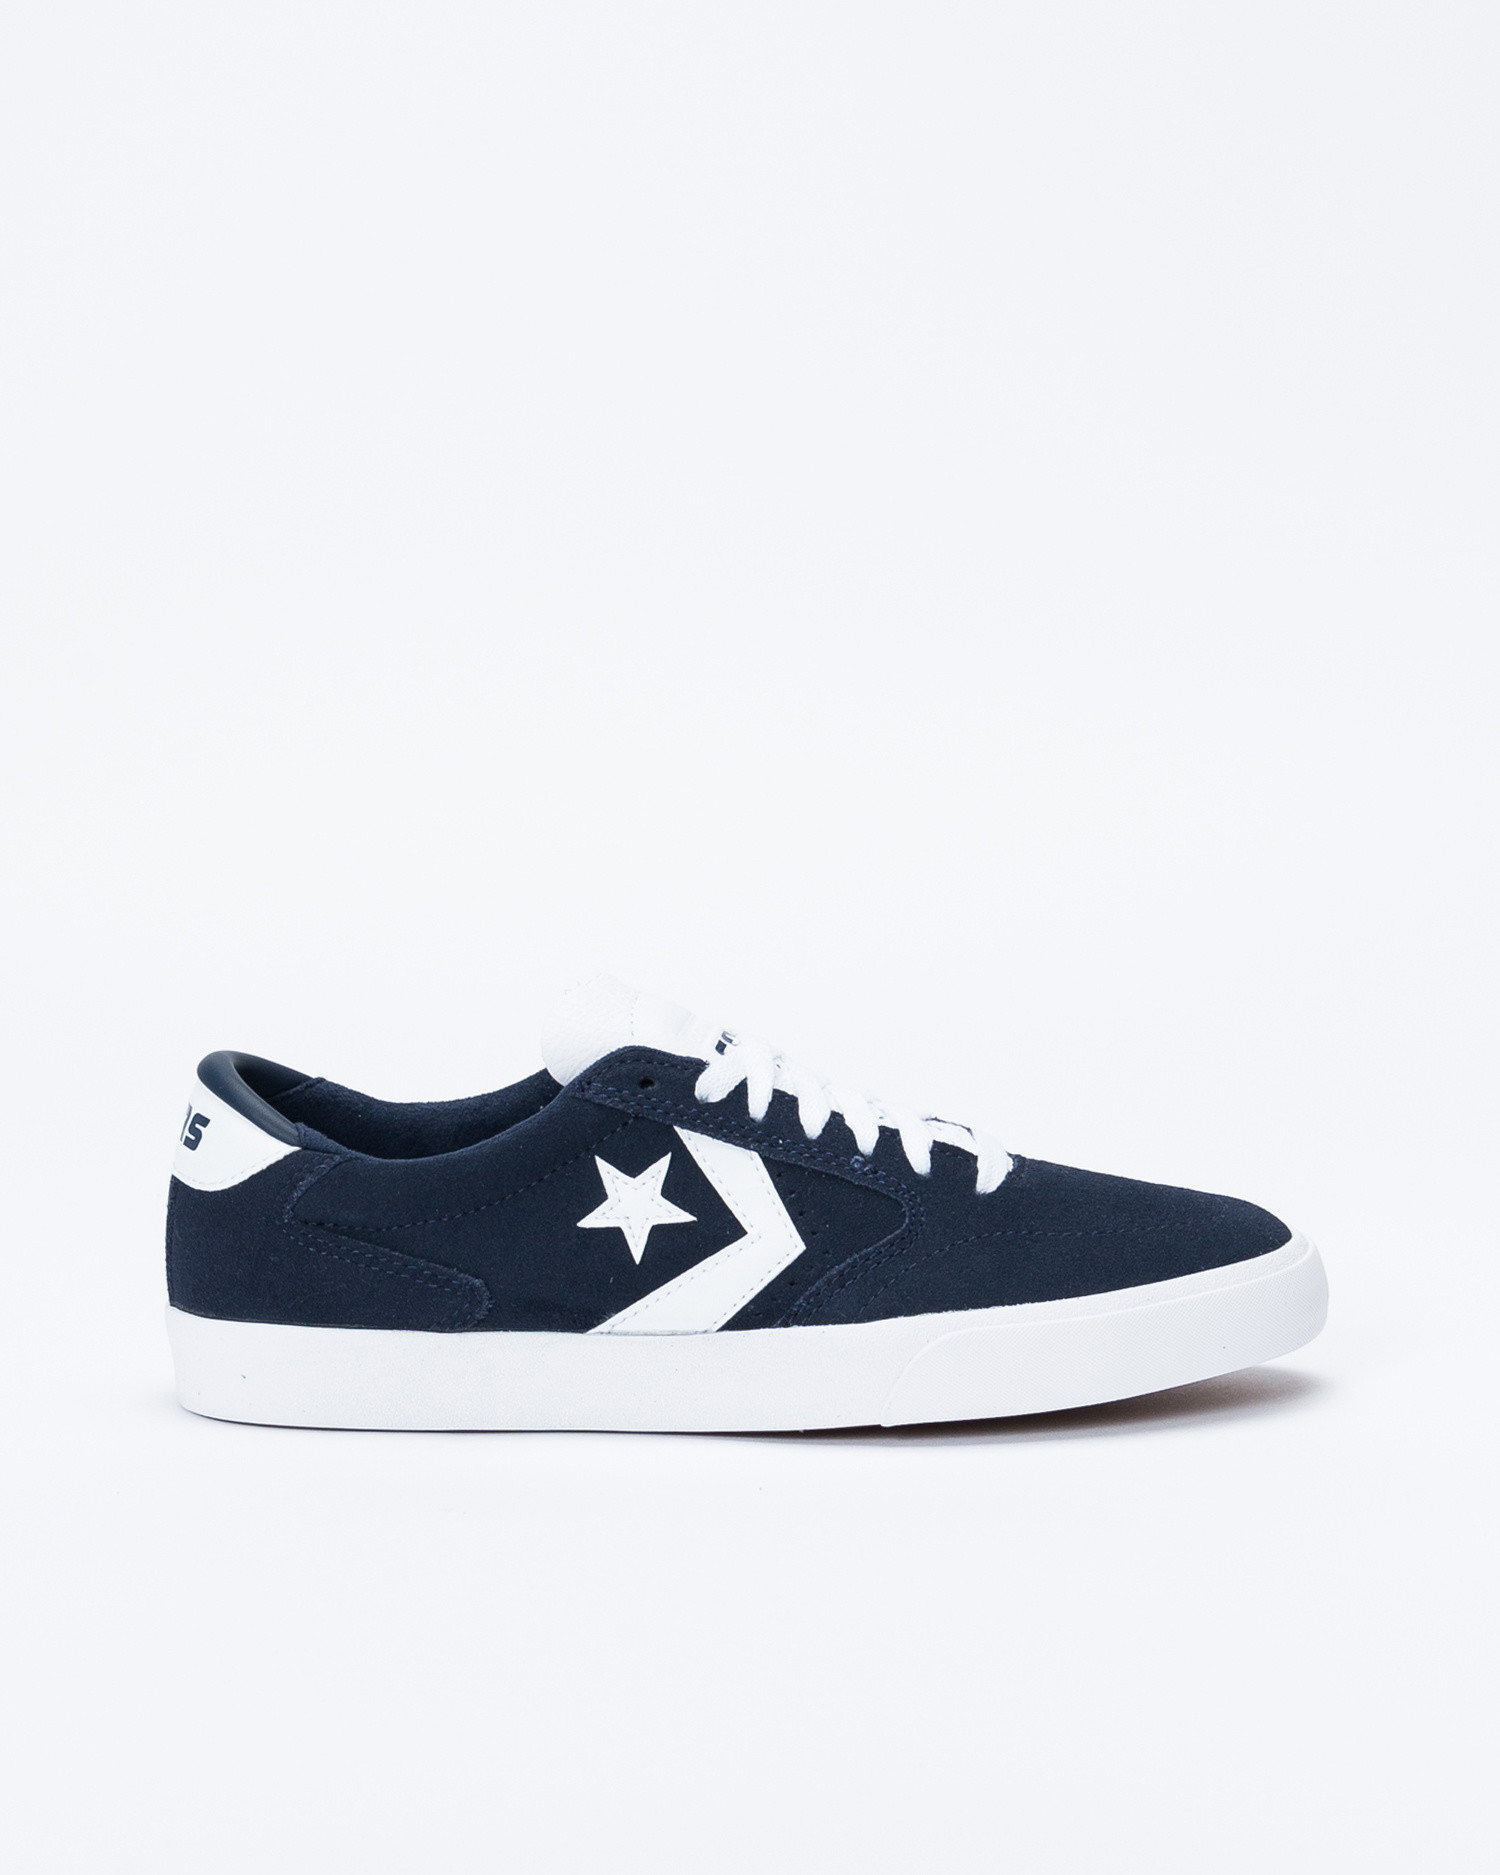 Converse Checkpoint Pro OX Obsidian/Wolf/Grey White